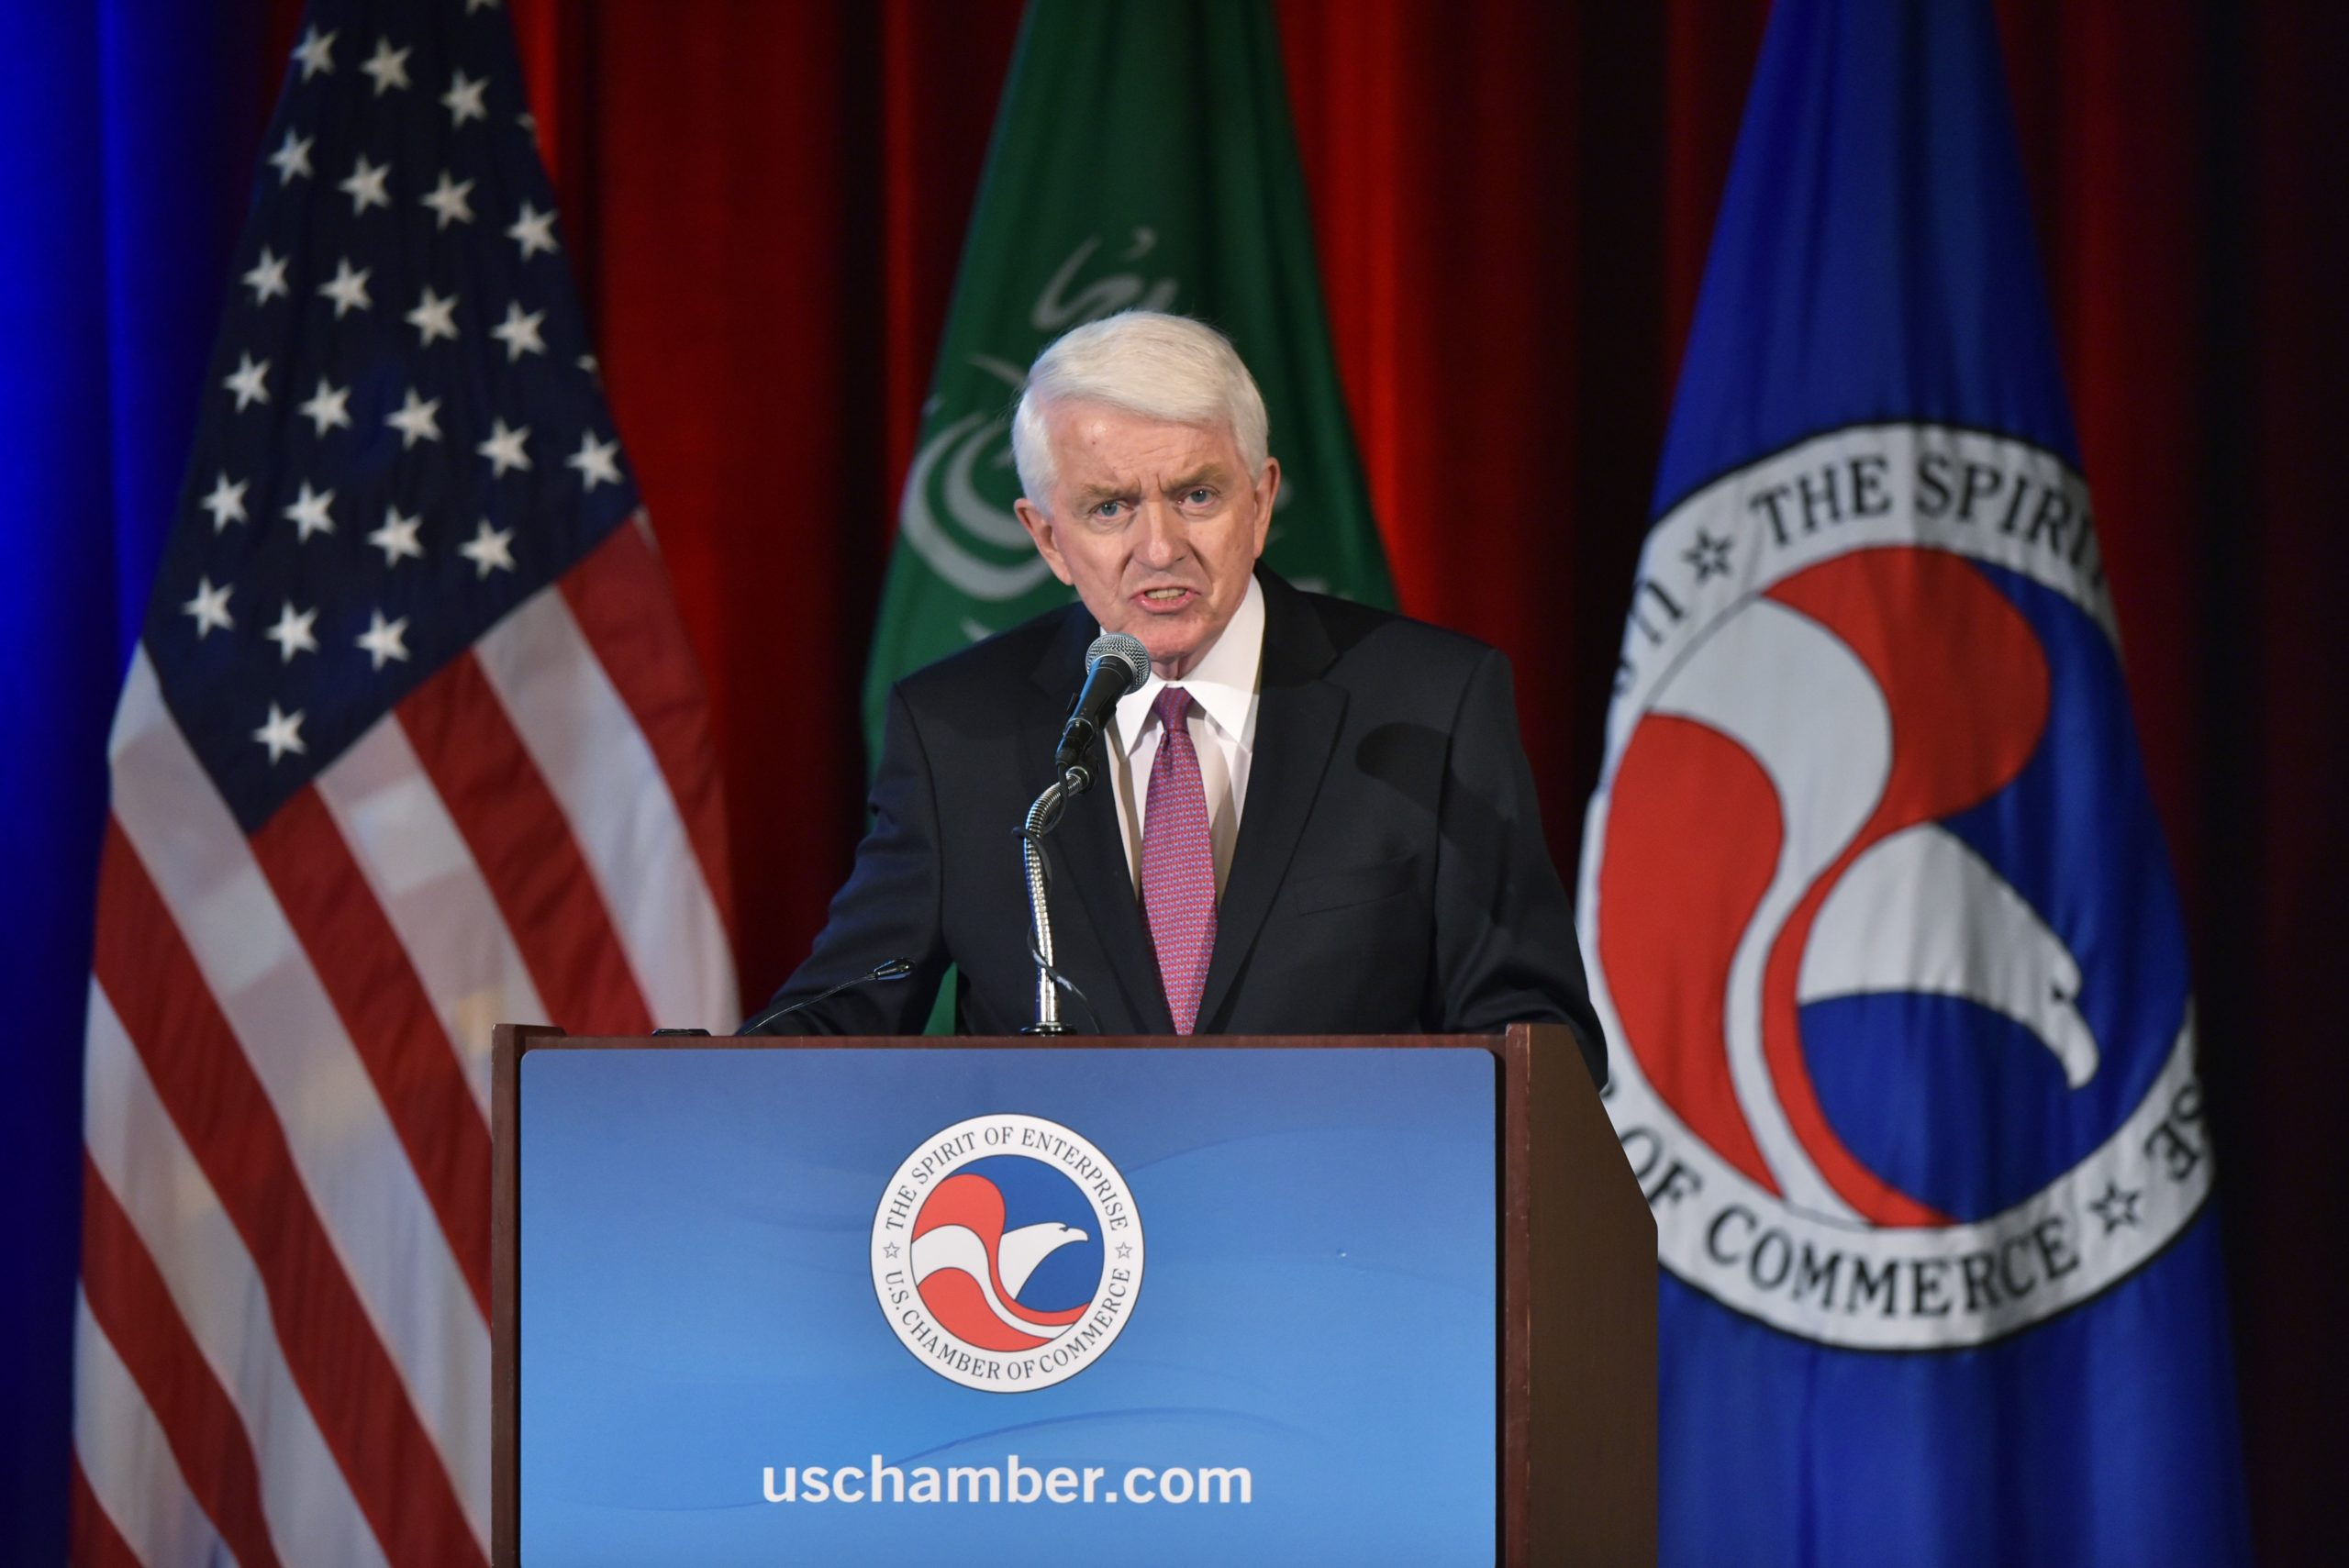 U.S. Chamber of Commerce President and CEO Tom Donohue speaks in 2017. (Mandel Ngan/AFP via Getty Images)